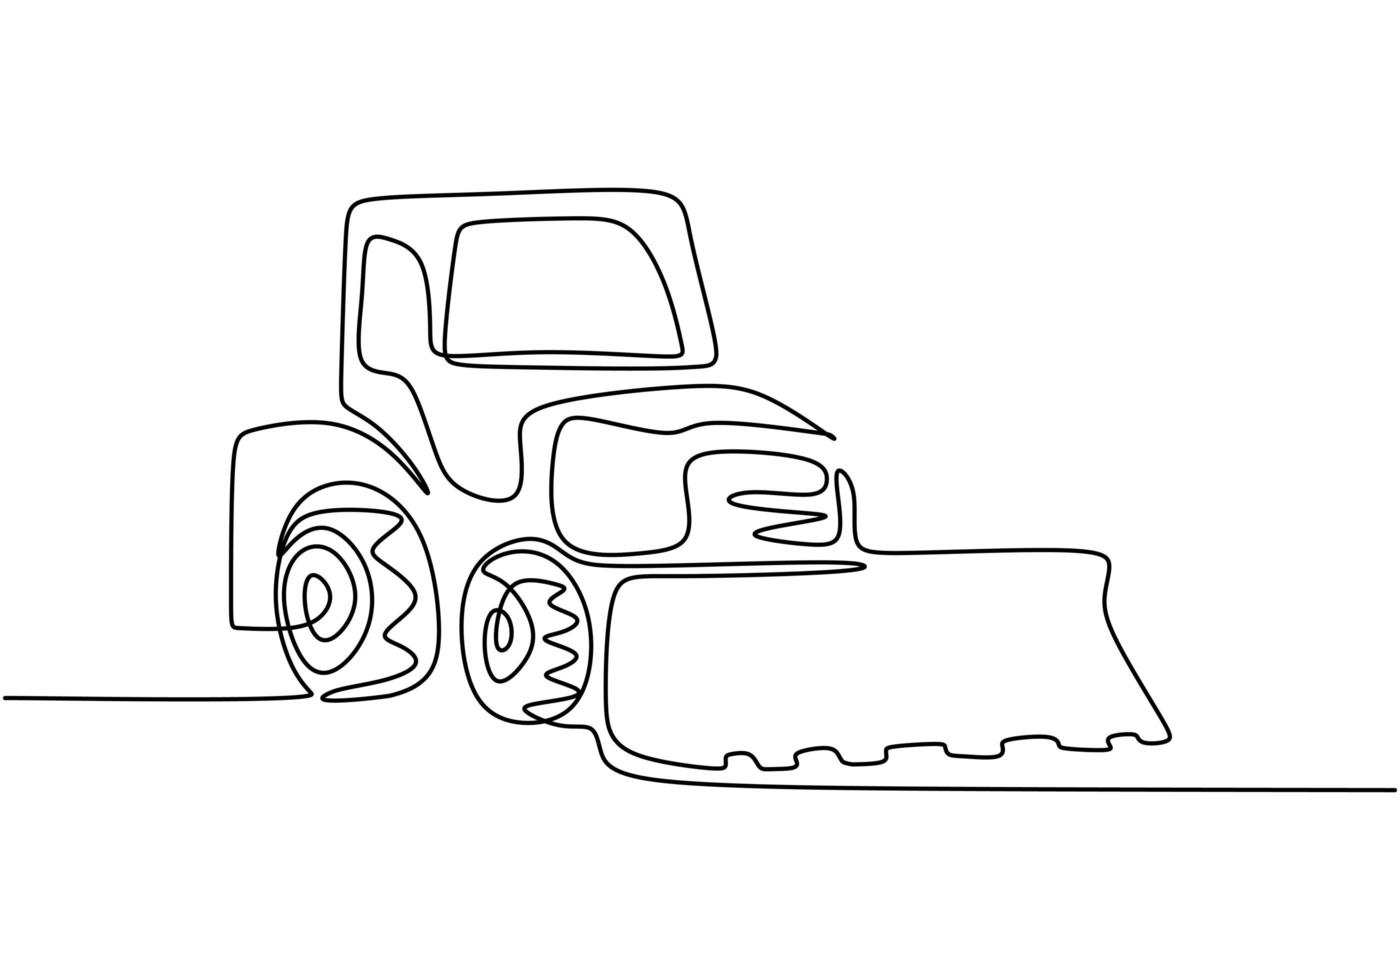 The construction machine is a tractor excavator. Bulldozer the construction machine. vector